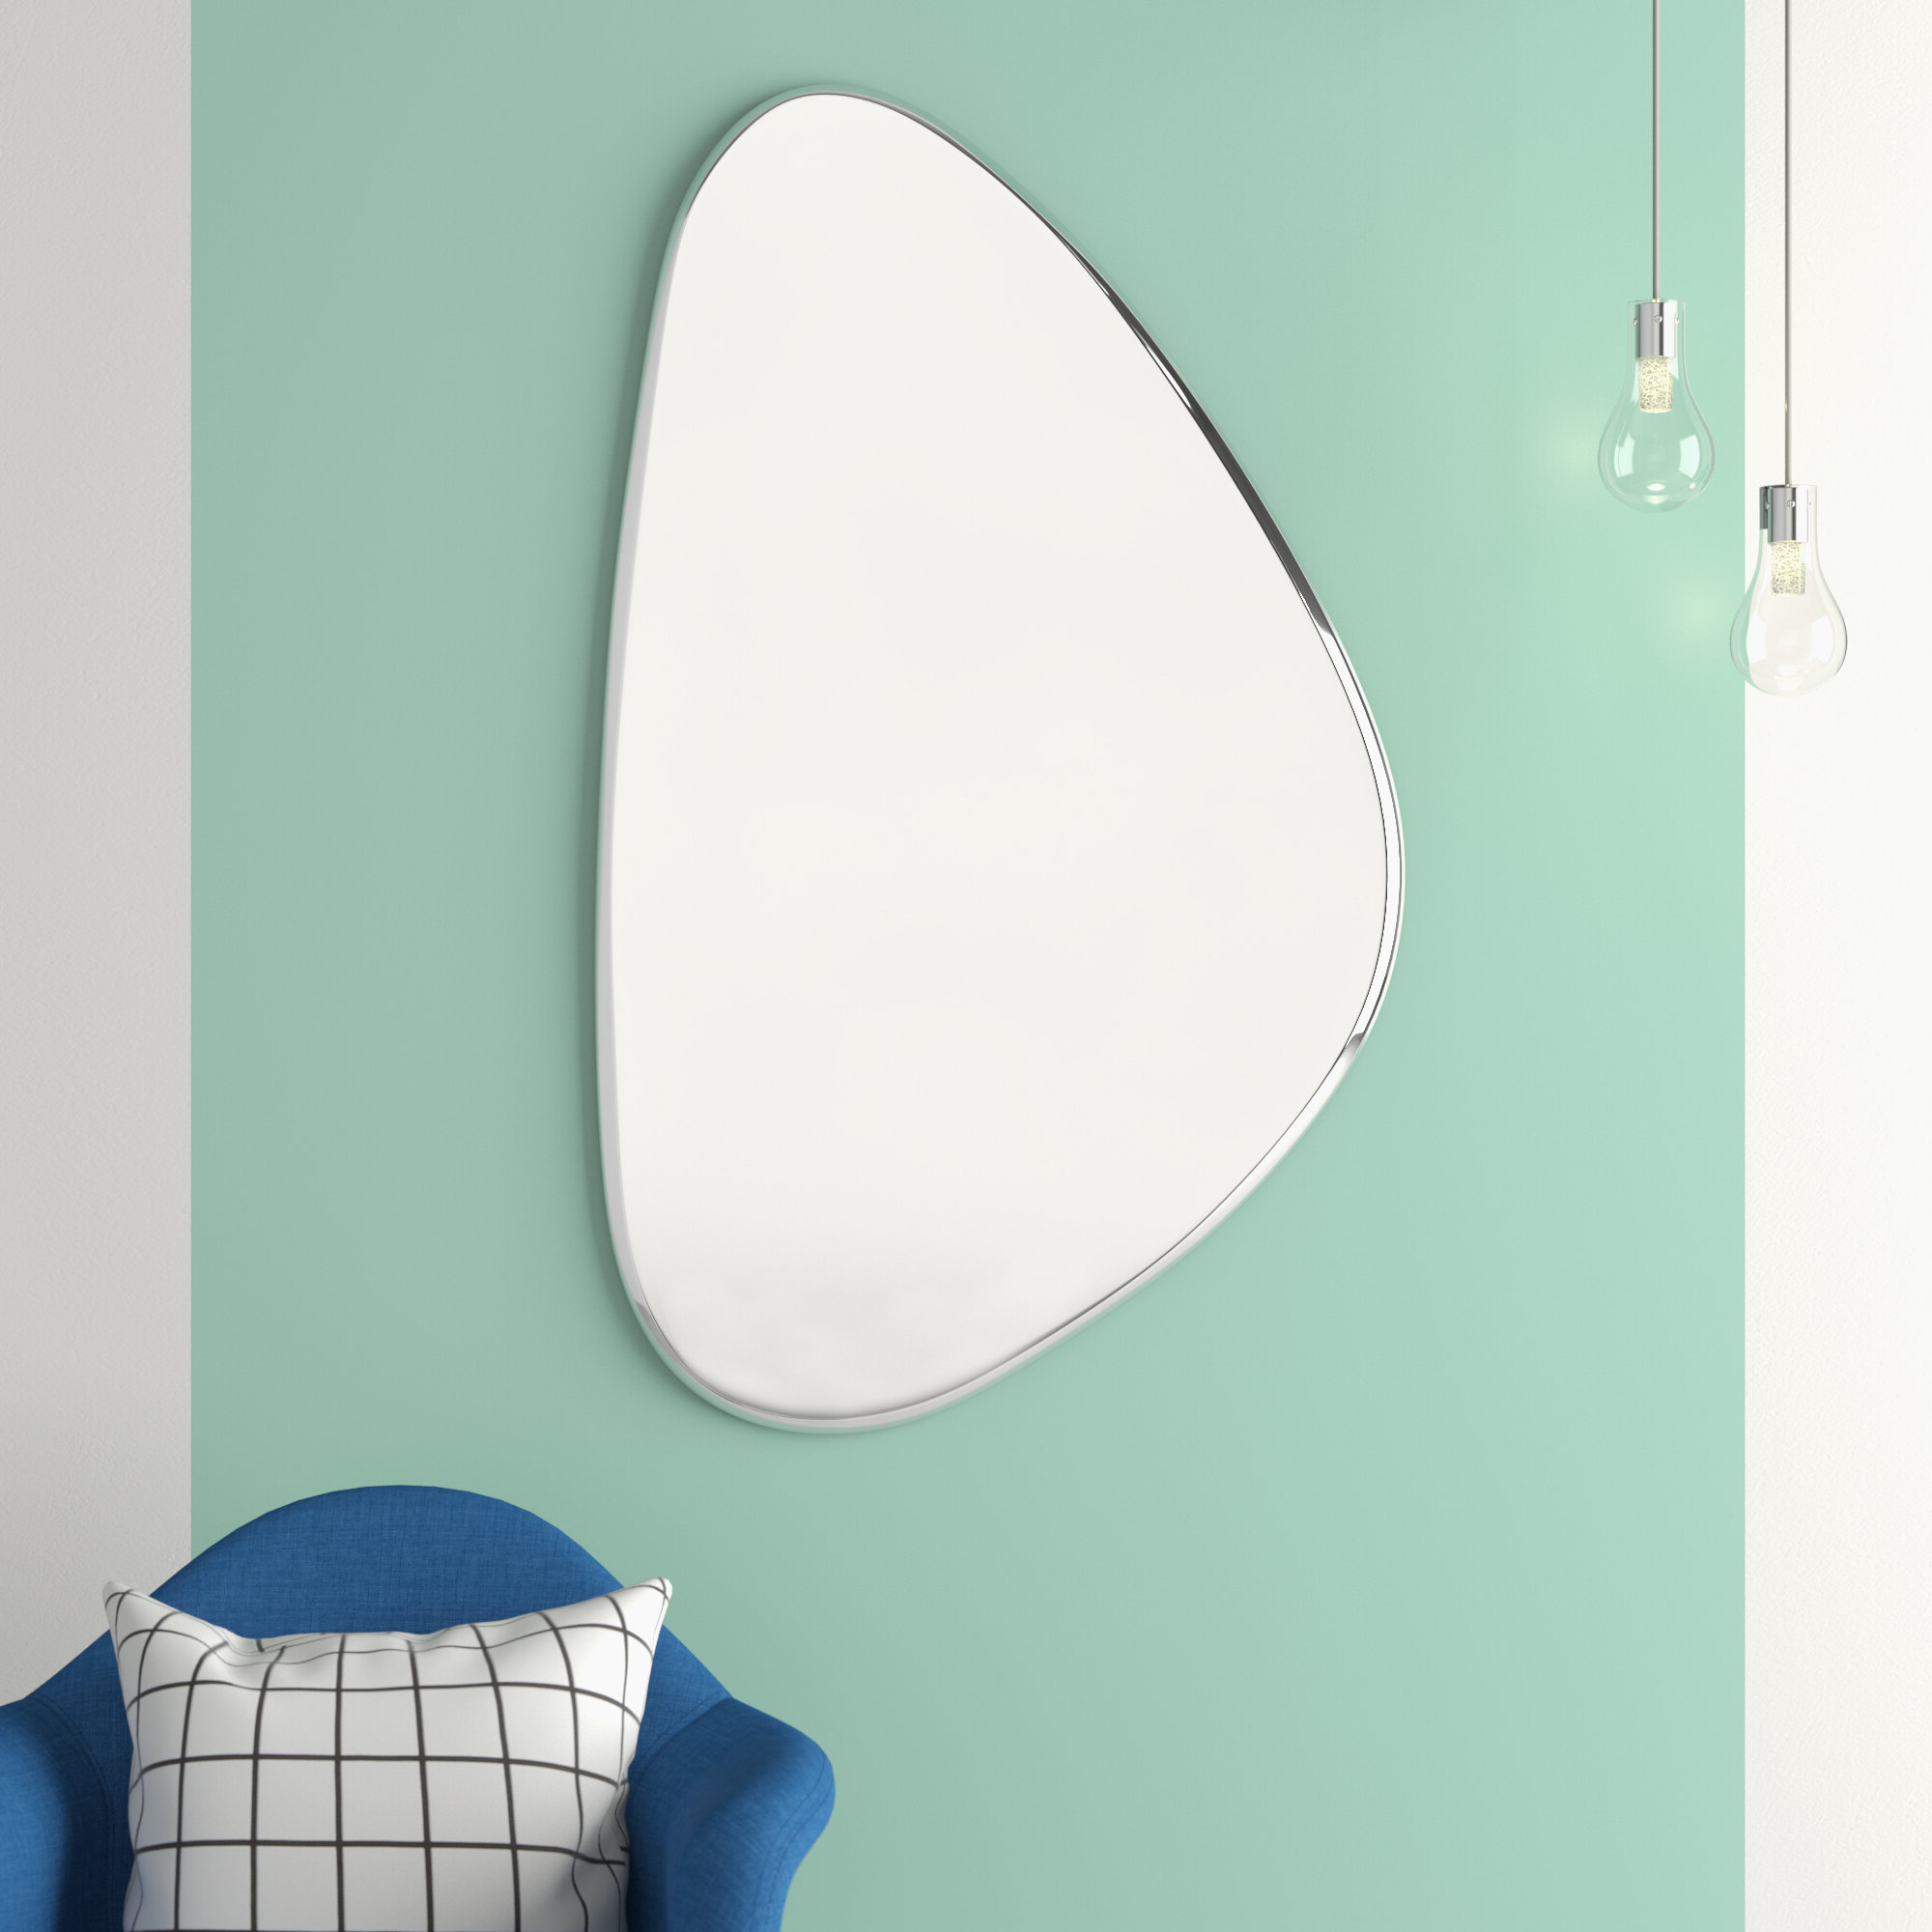 Clintonville Frameless Wall Mirror Intended For Favorite Aqua Wall Mirrors (Gallery 20 of 20)